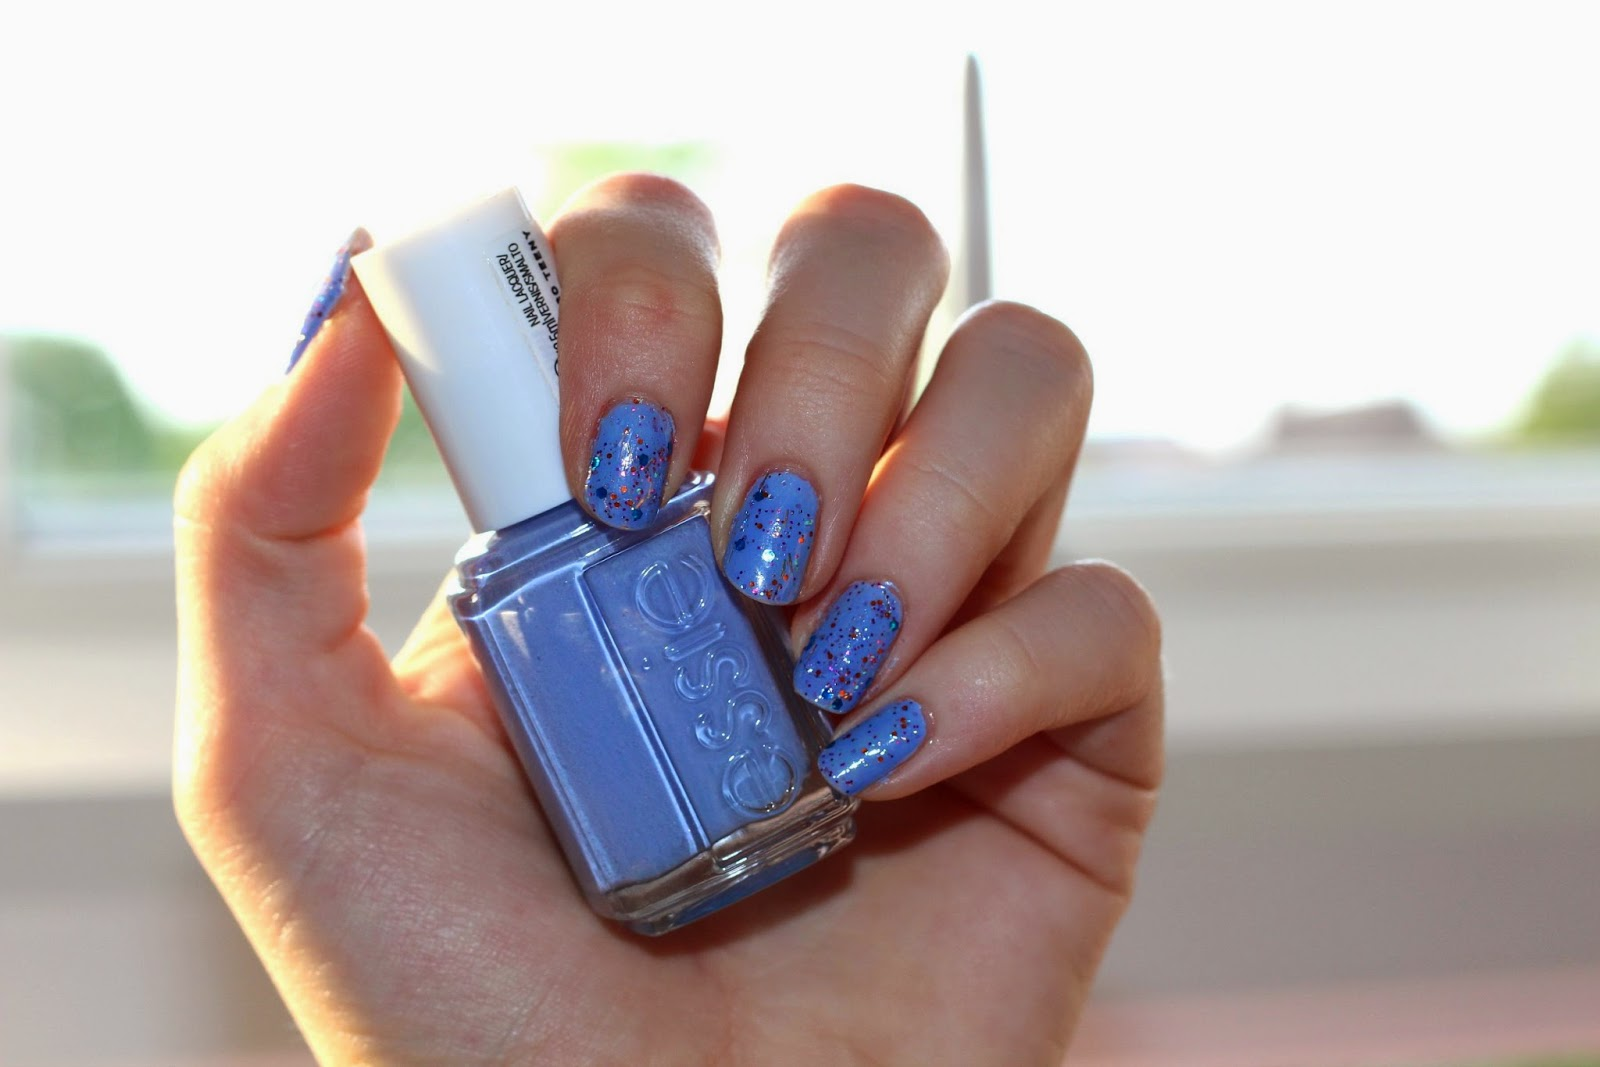 A close up picture of a nail swatch holding a bottle of Essie Bikini So Teeny